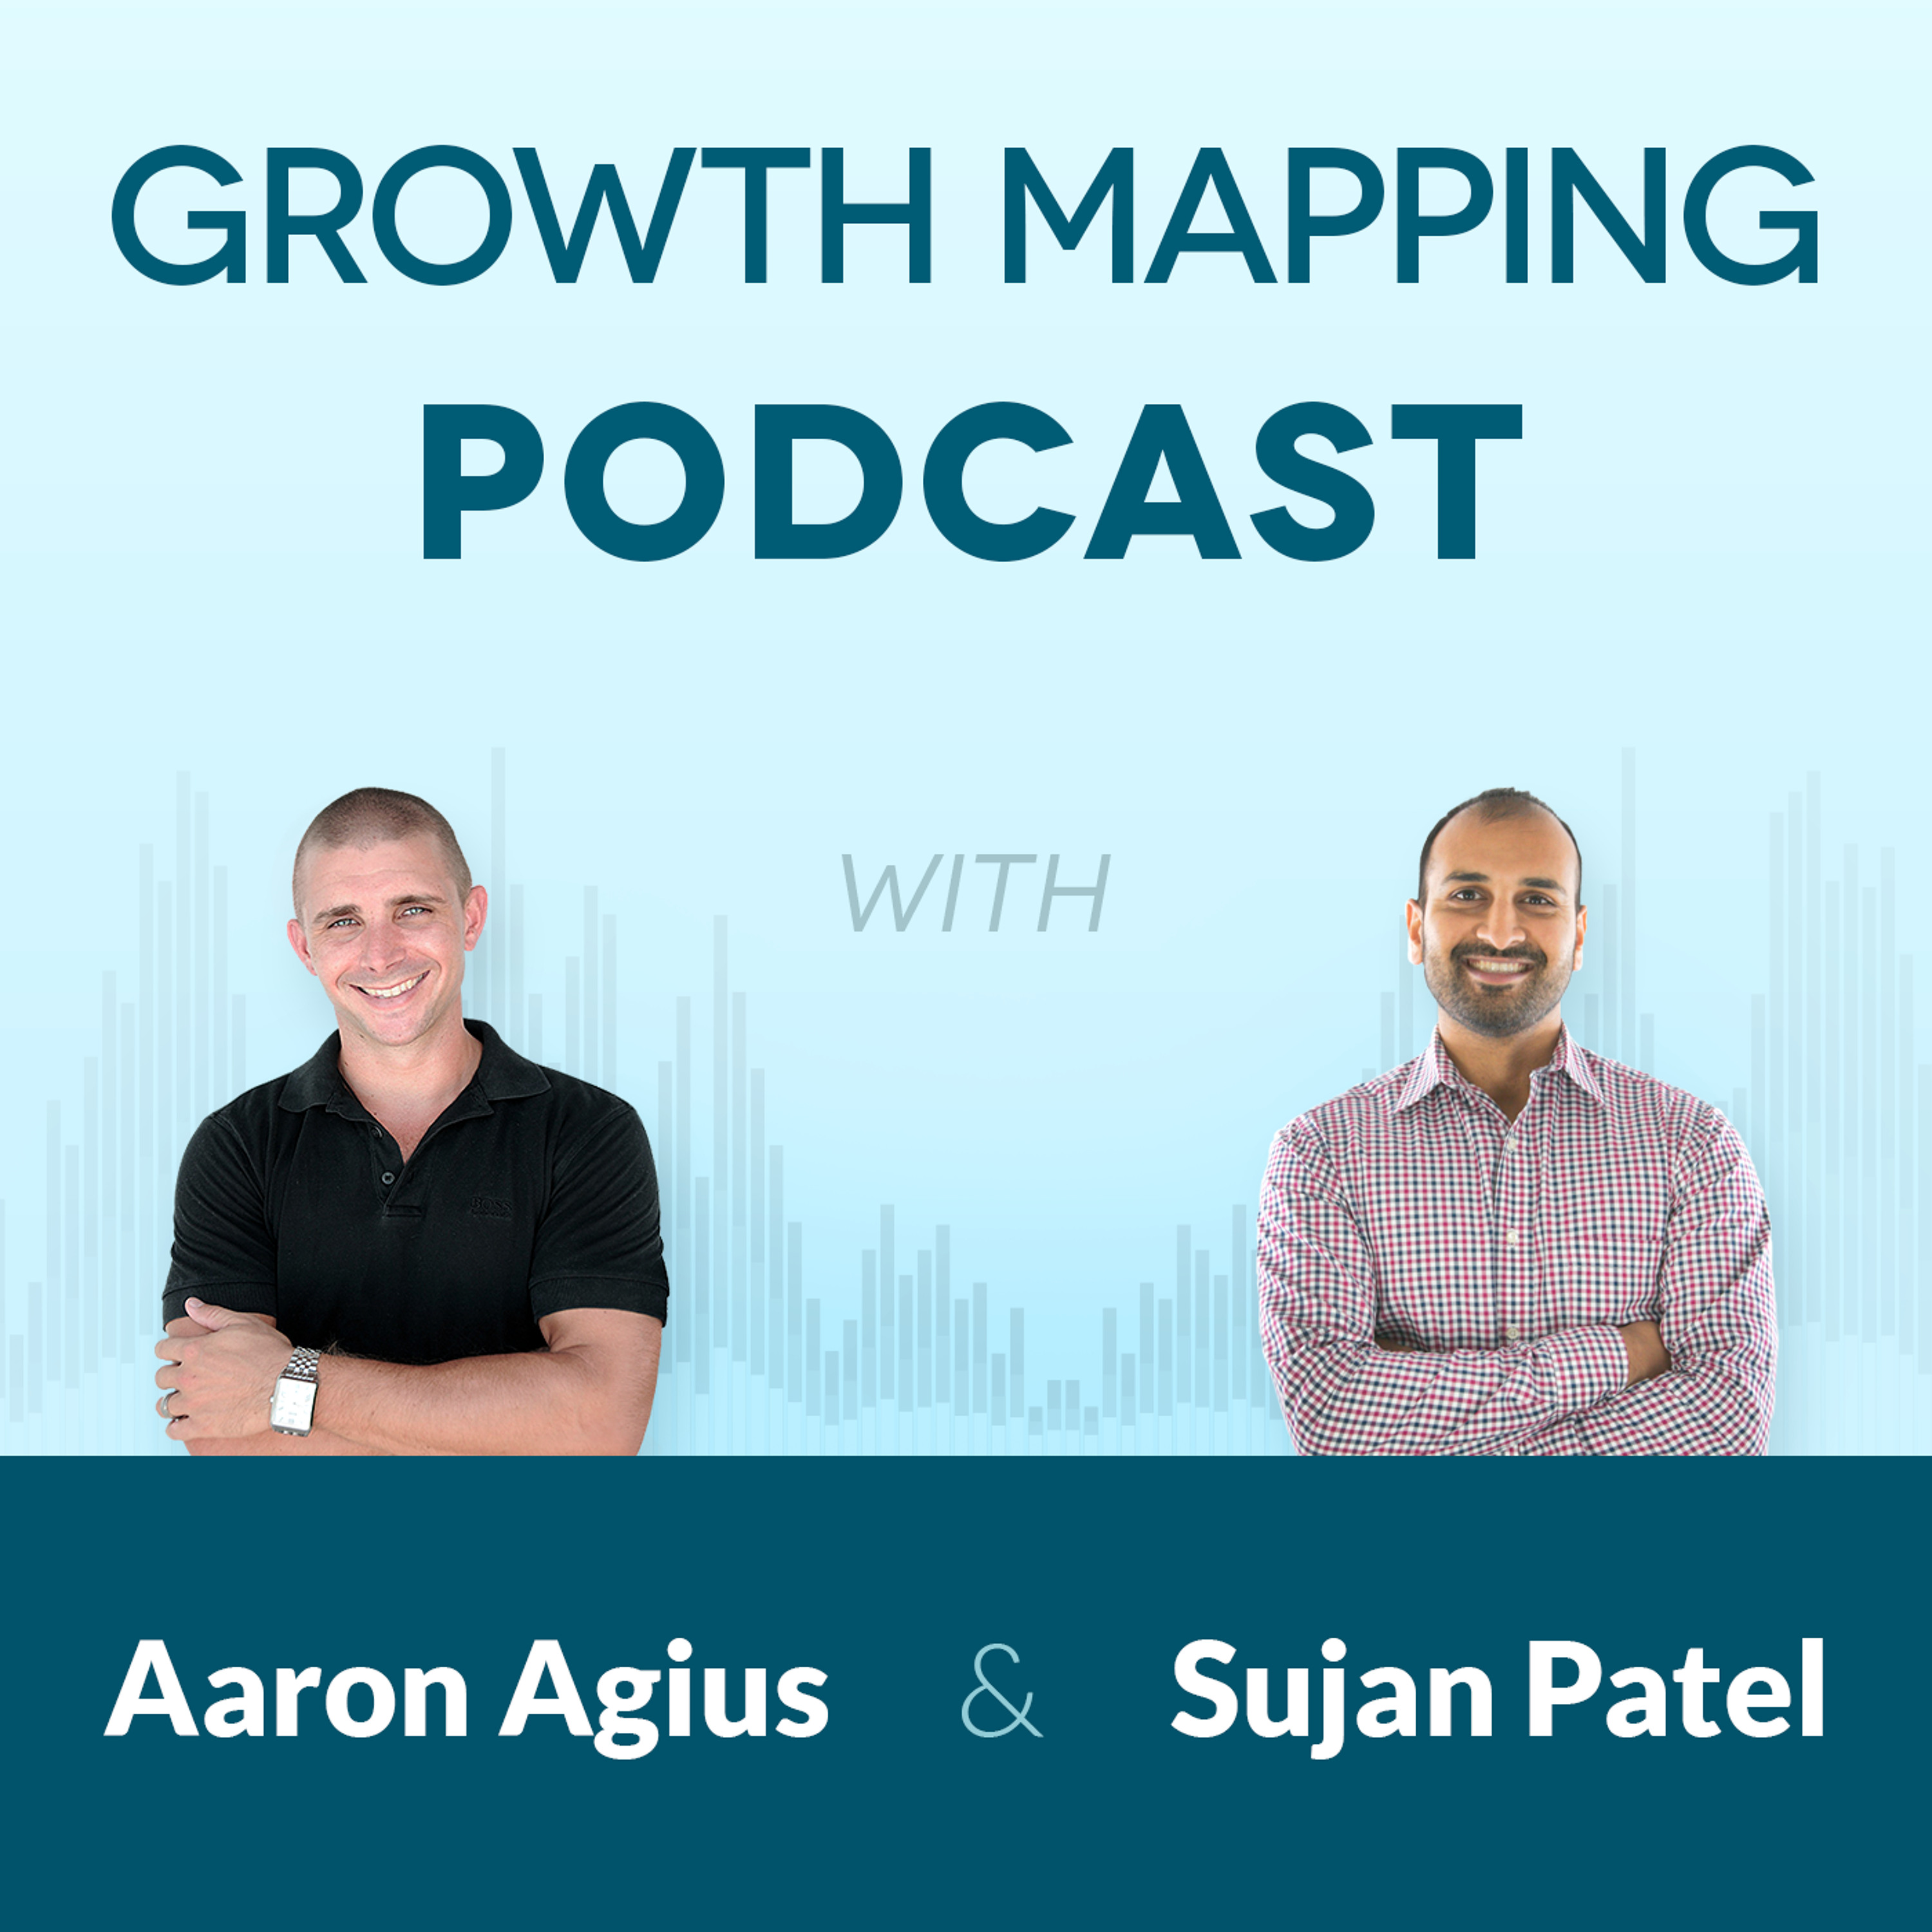 Ep 43 - A Marketing Roadmap for Totally New Business in 2018